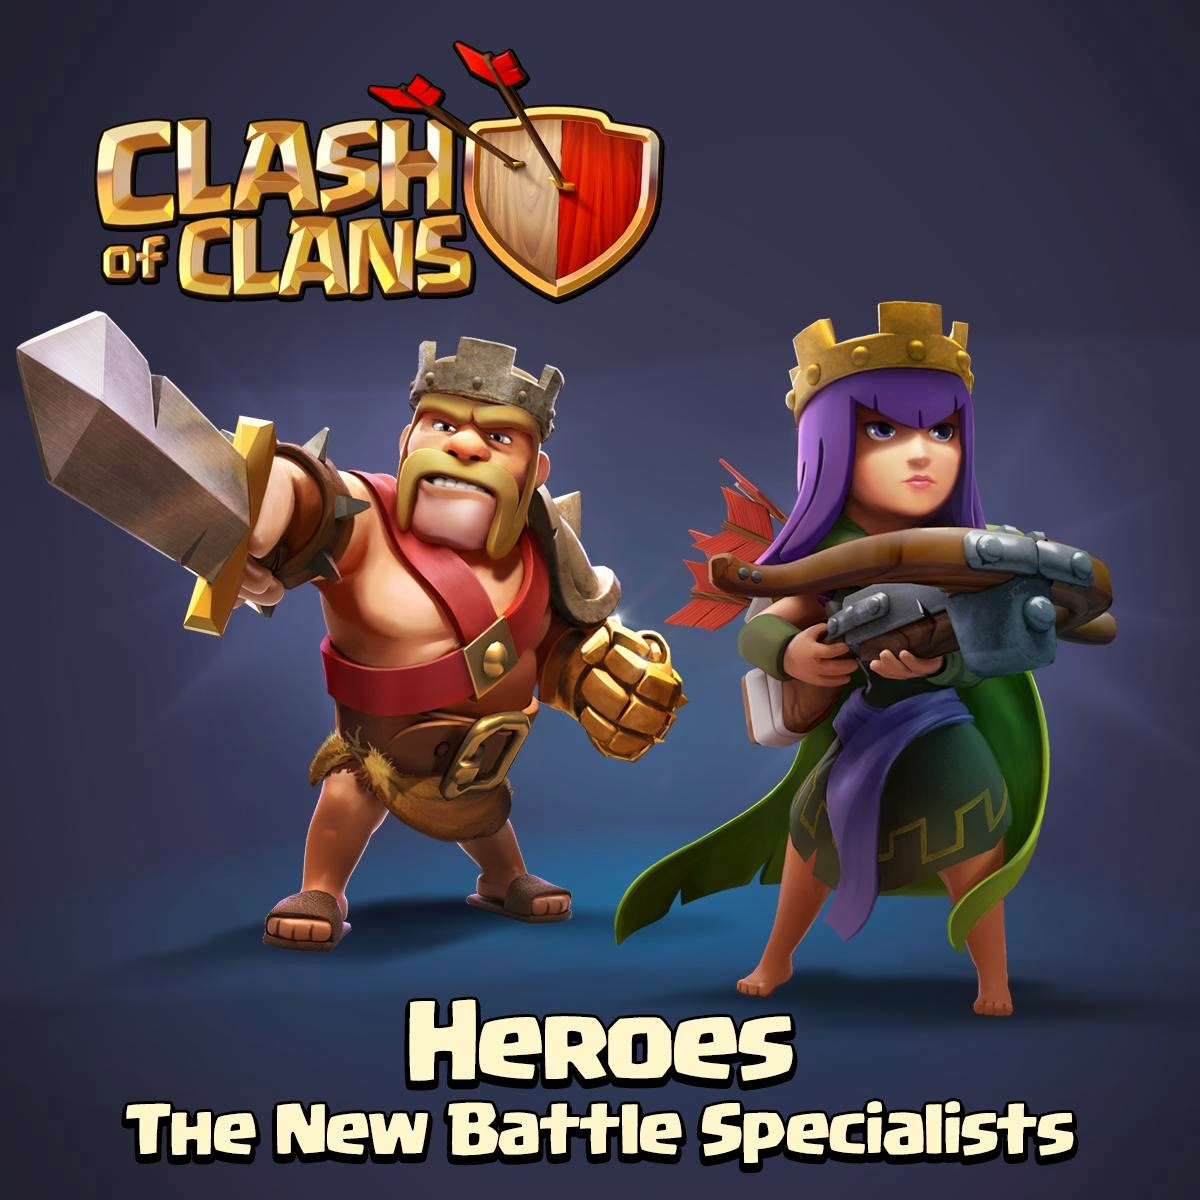 COC Indonesia 1945: Mengenal Clash of Clans